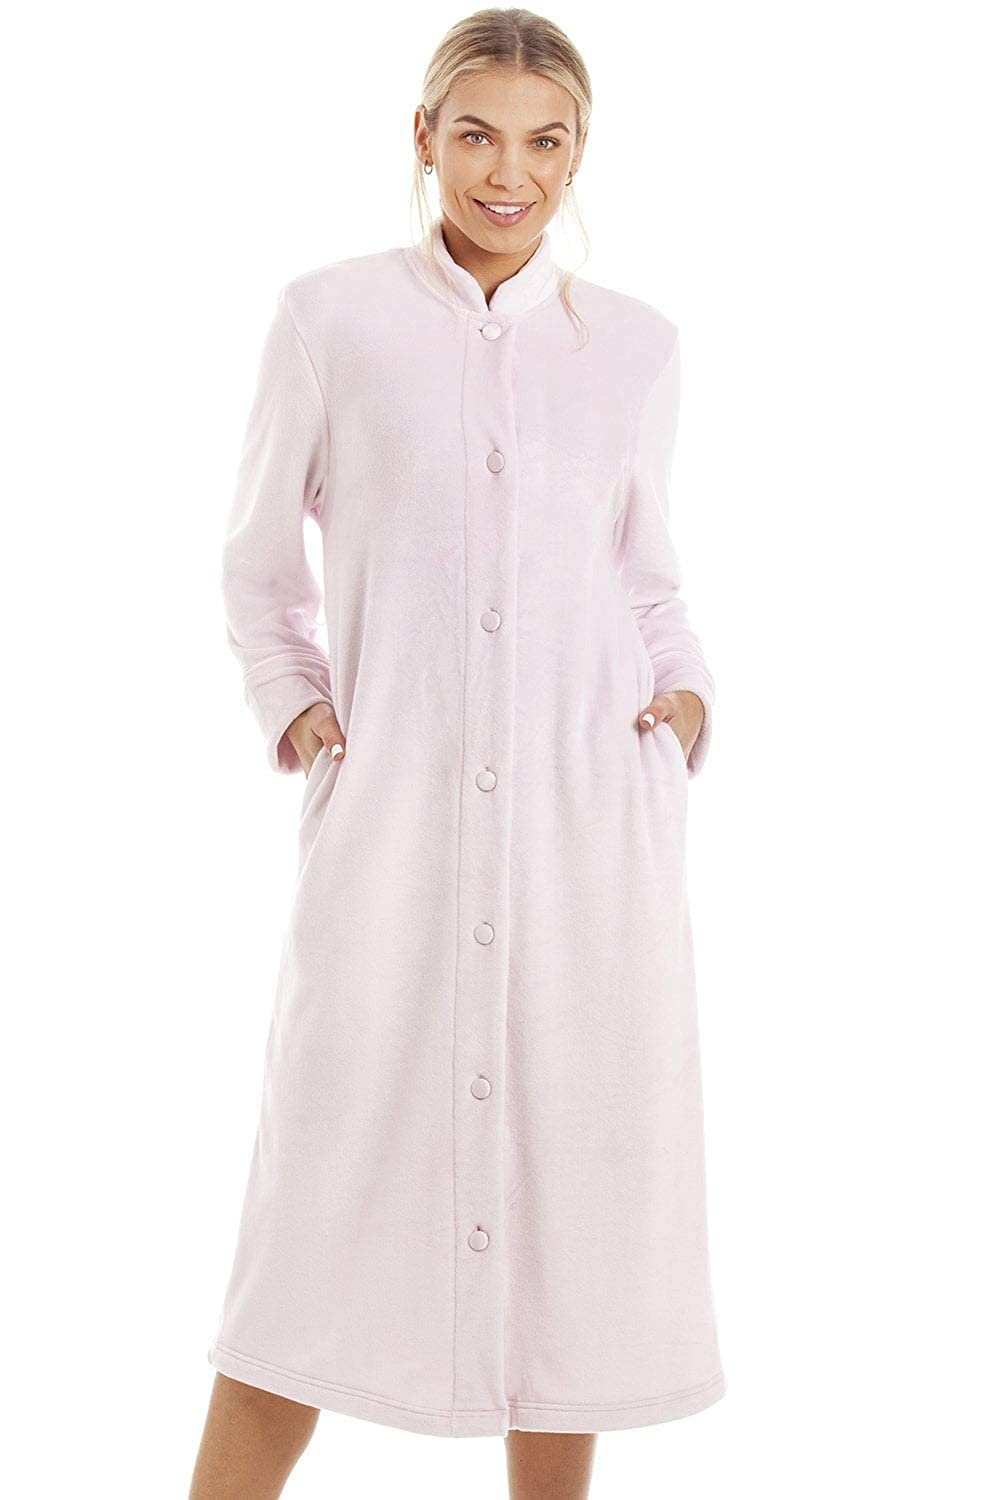 ddf98dbc53 Camille Womens Zip or Button Front Dressing Gown House Coat 16 18 Pink  Button  Camille  Amazon.co.uk  Clothing